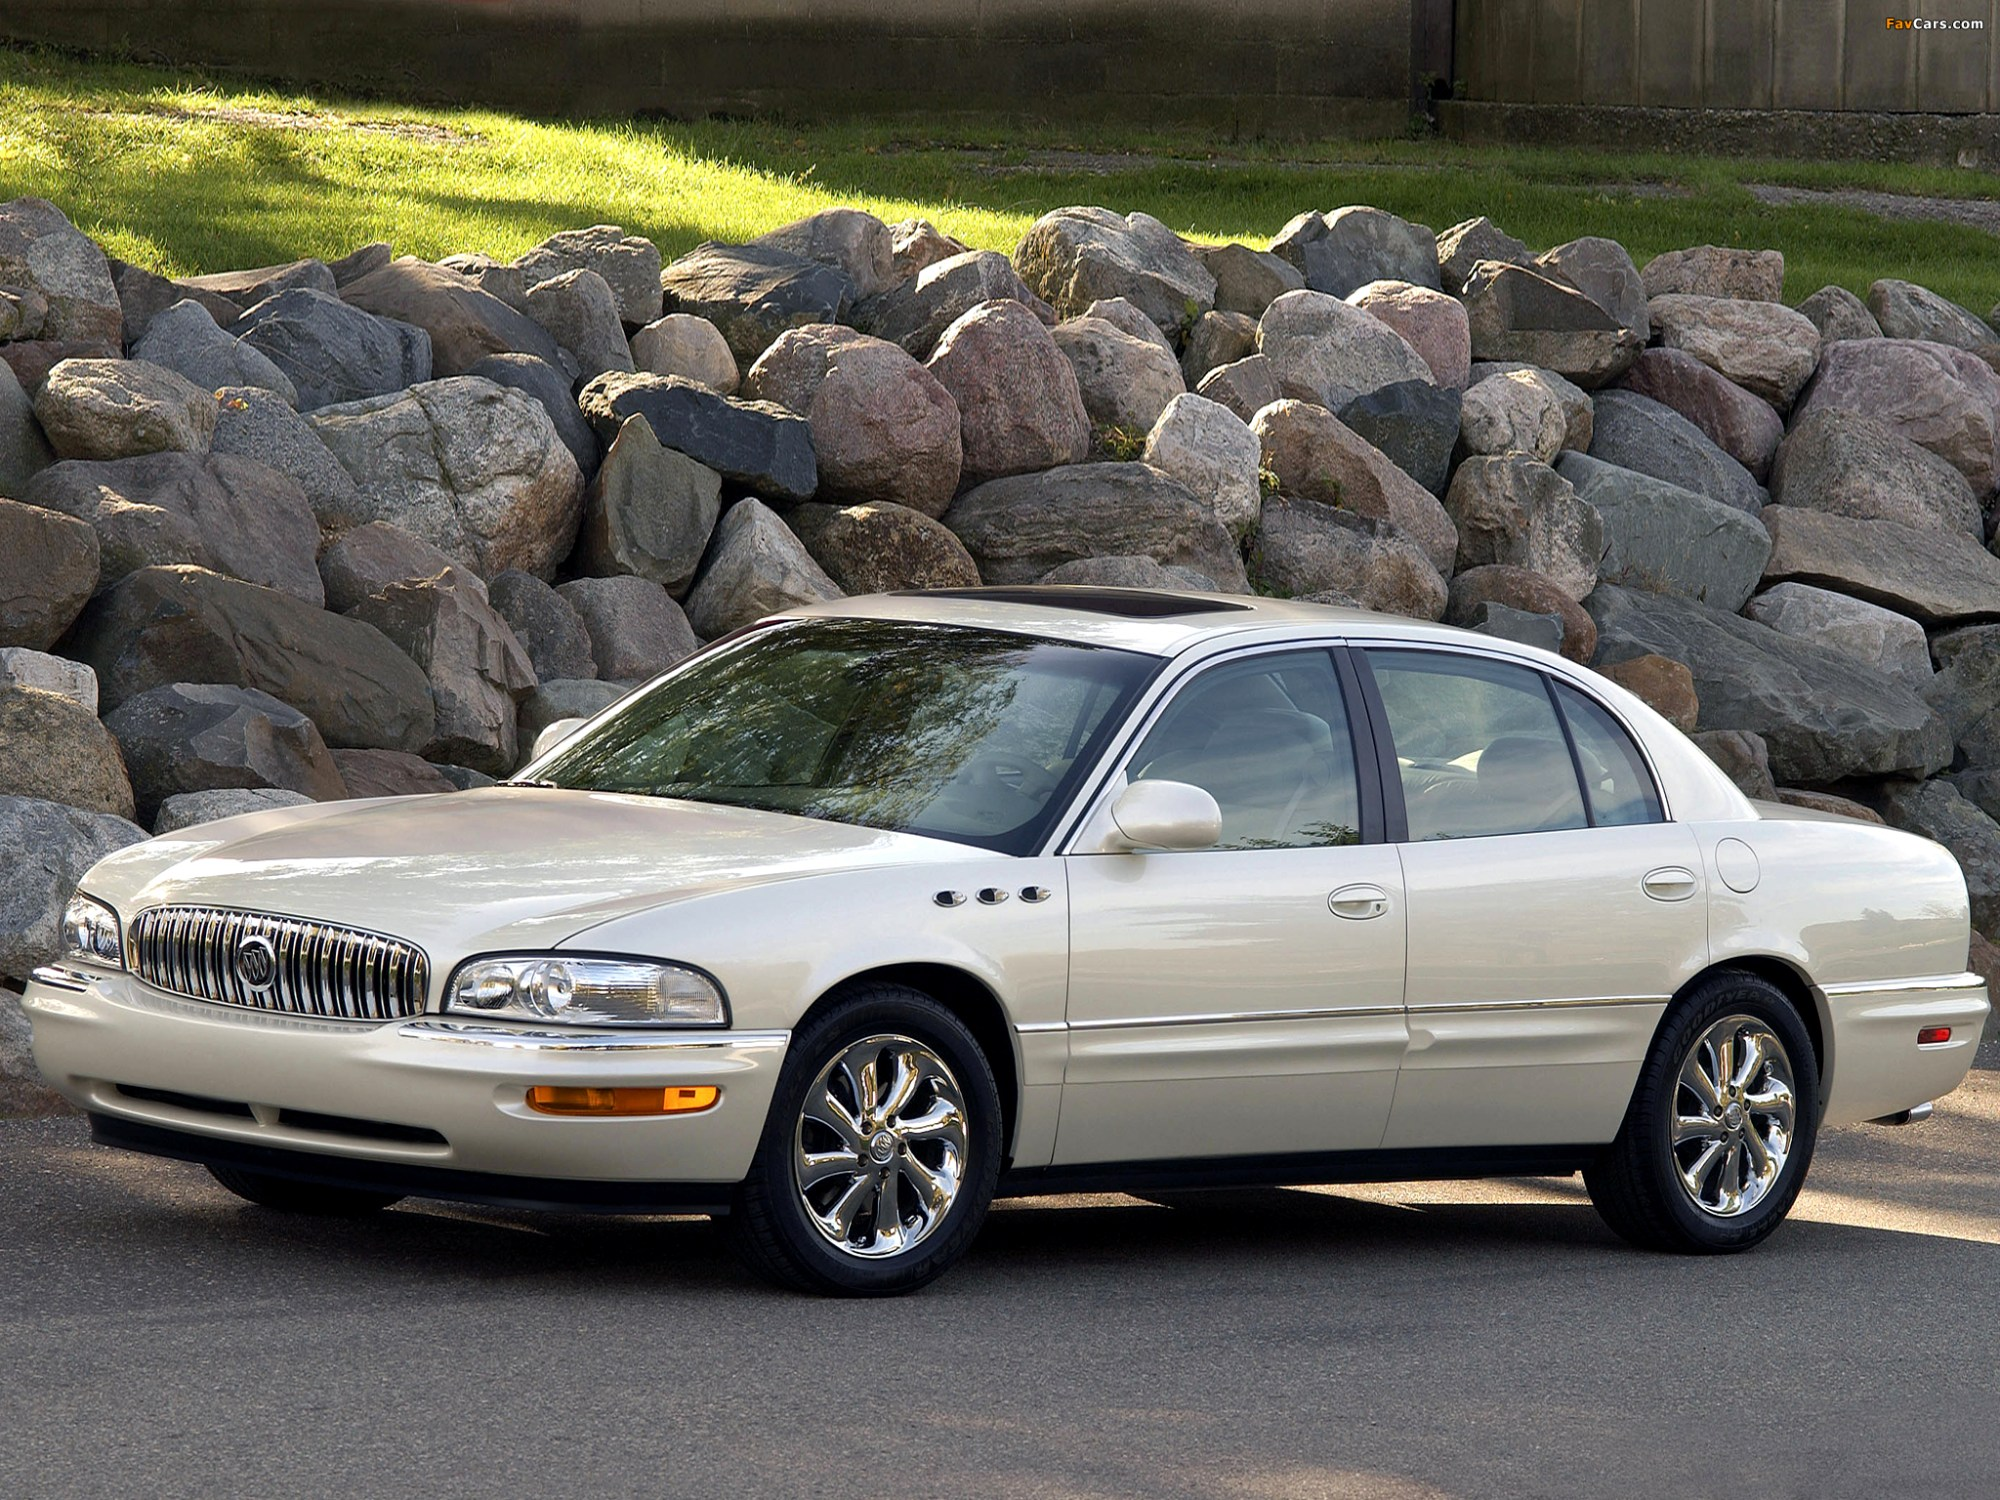 hight resolution of buick park avenue ultra 2003 05 wallpapers 2048 x 1536